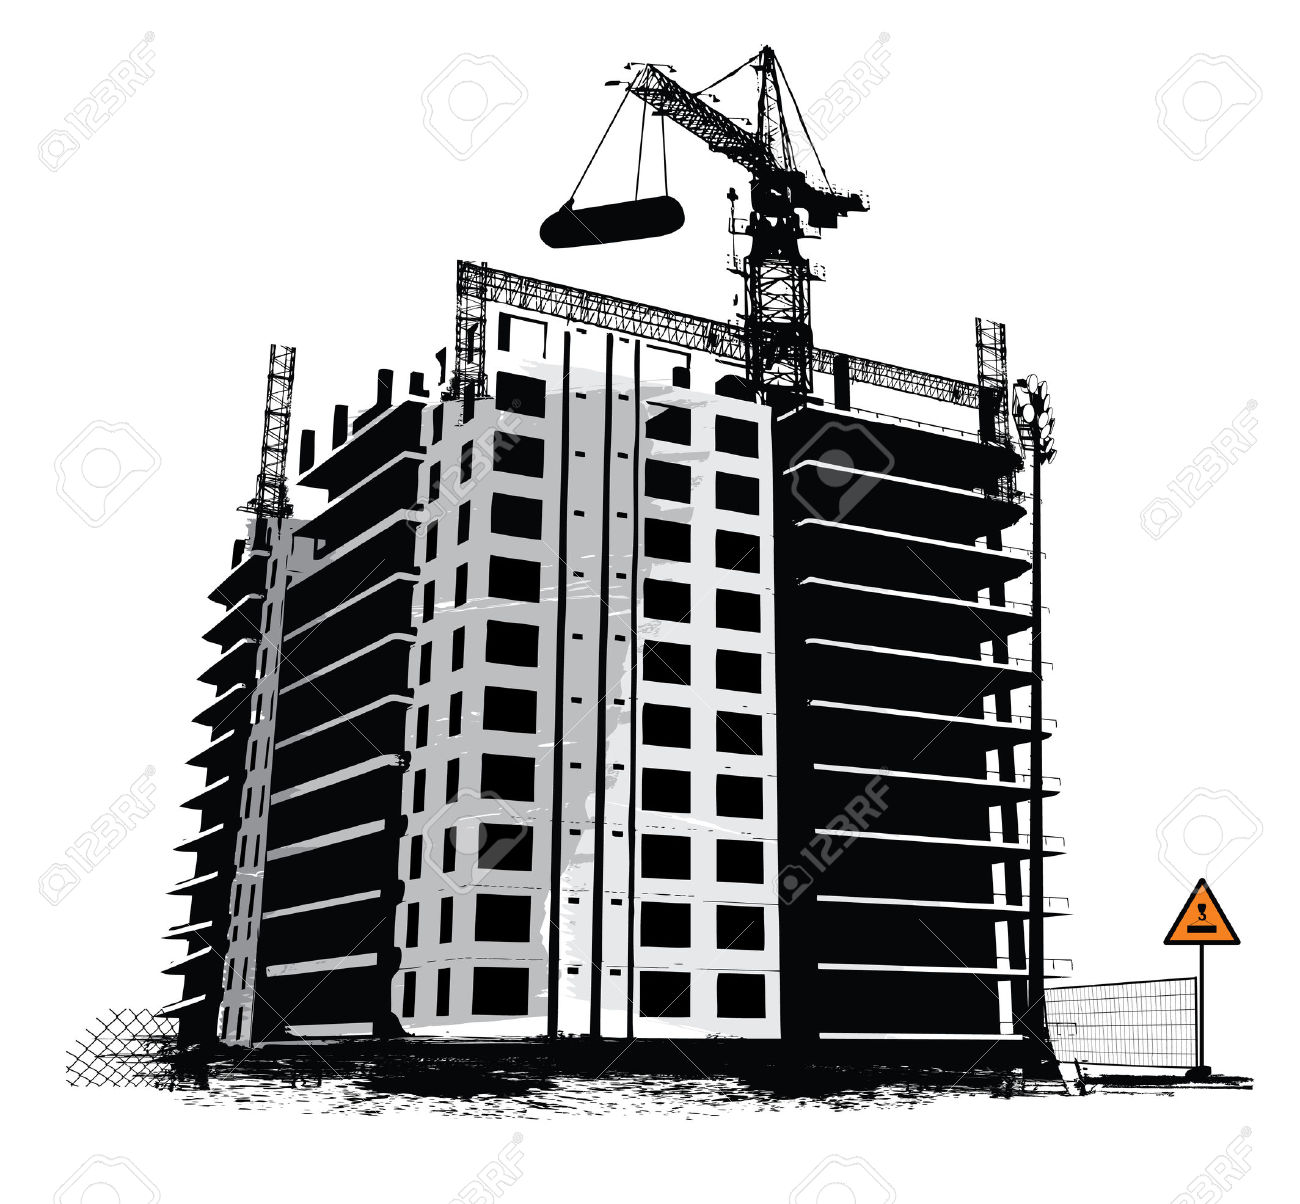 Construction Work Site Industrial Background Royalty Free Cliparts.